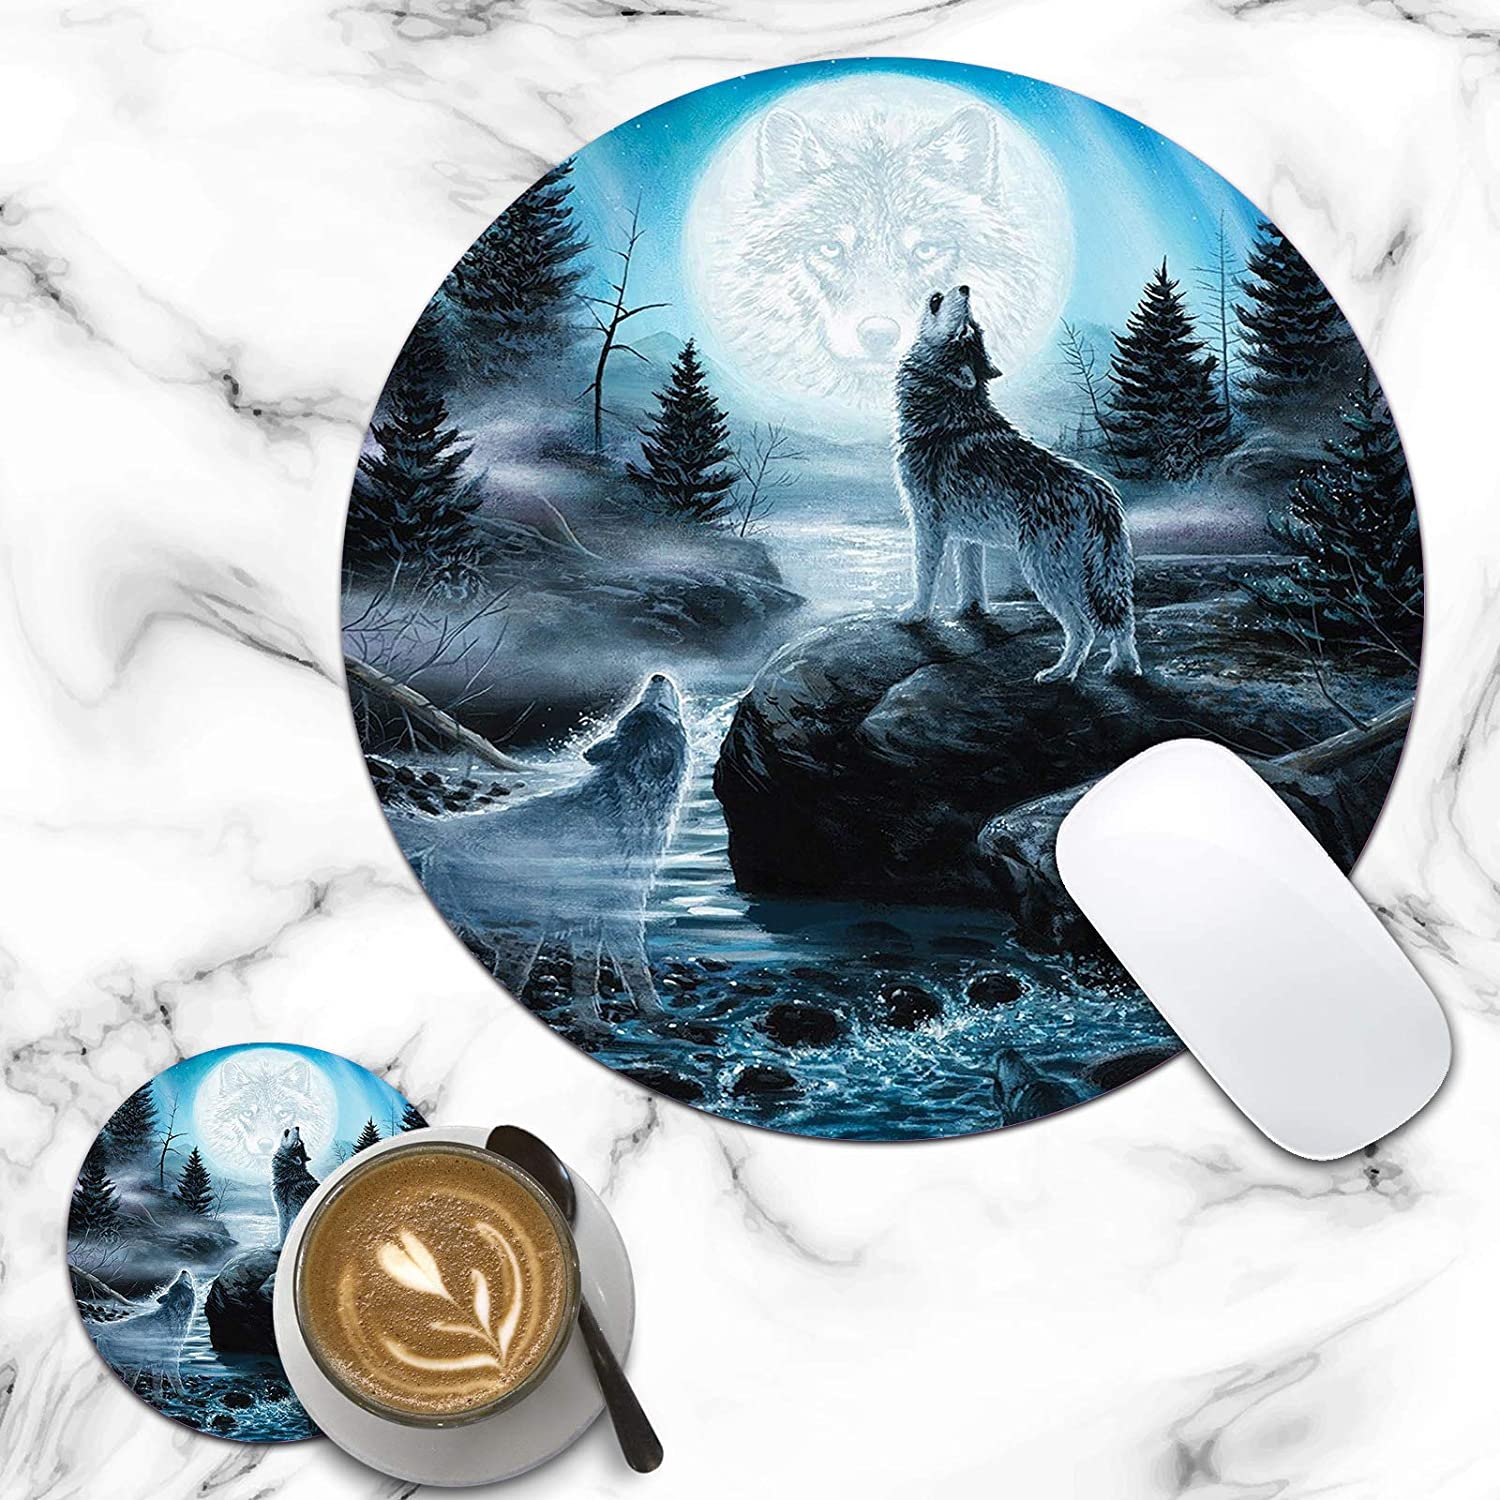 Round Mouse Pad Howling Sale special price Wolf Customized Non-Slip Rubber 2021 Designs